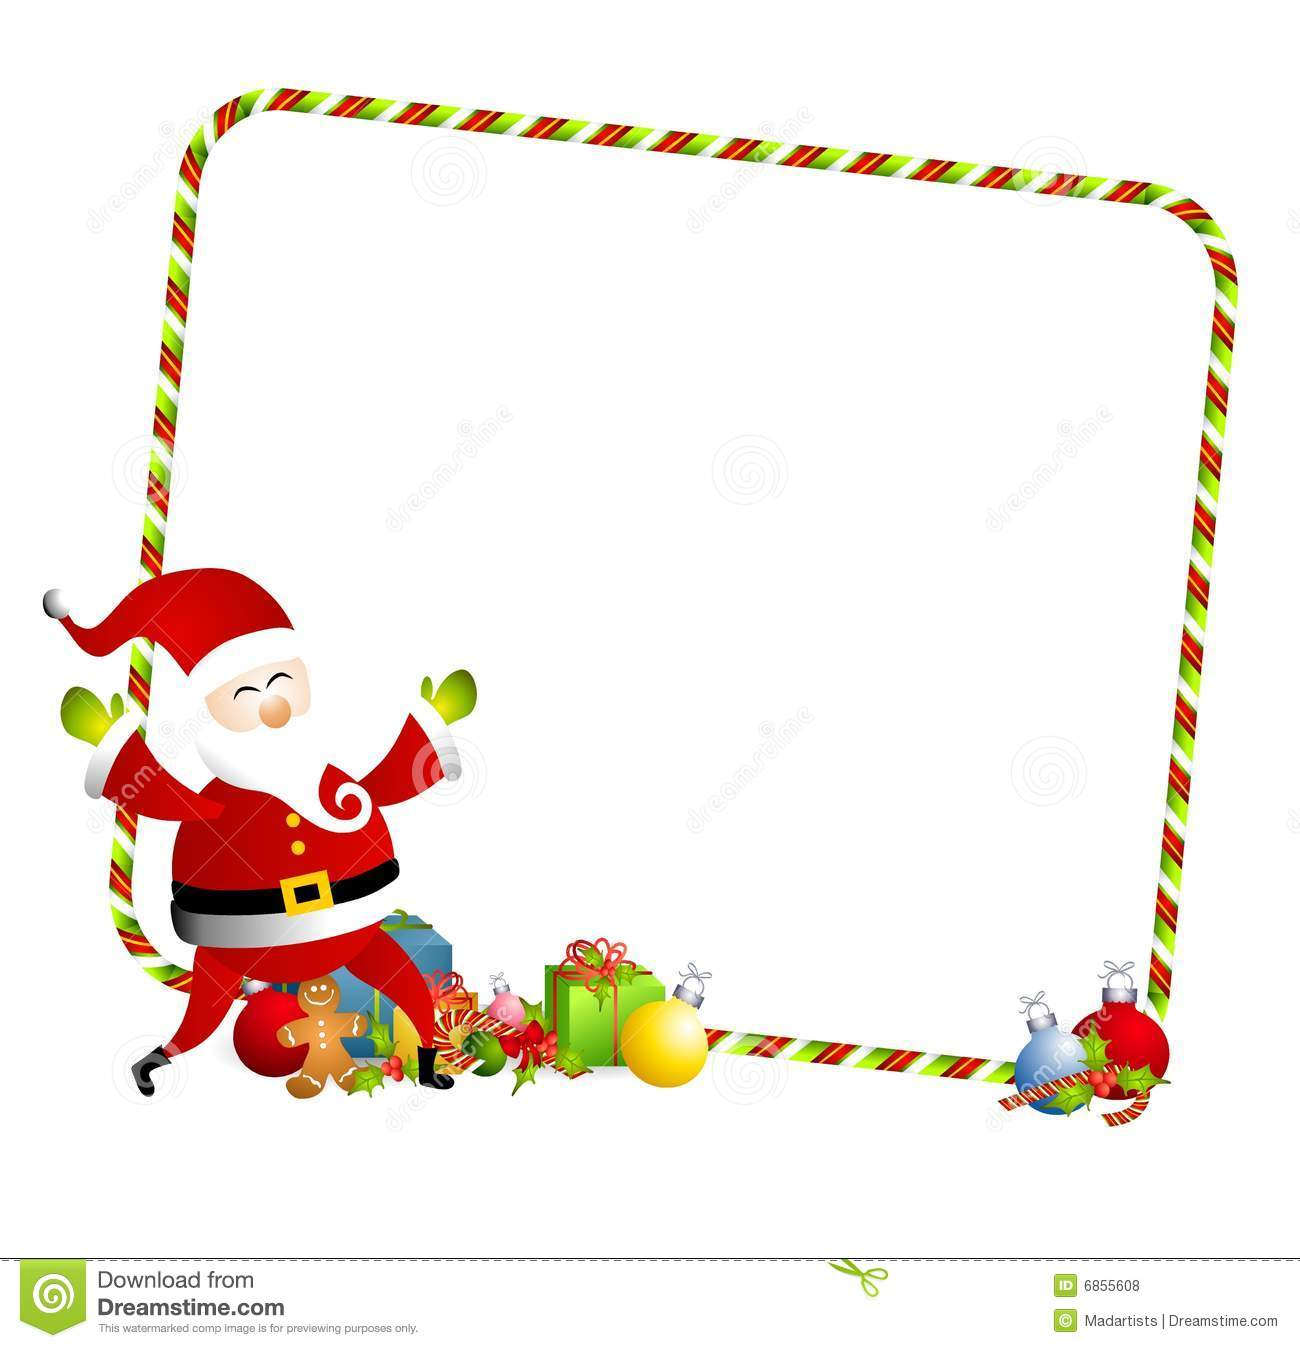 Holley clipart christmas presents border Clipart Free Border christmas%20present%20border%20clipart Panda